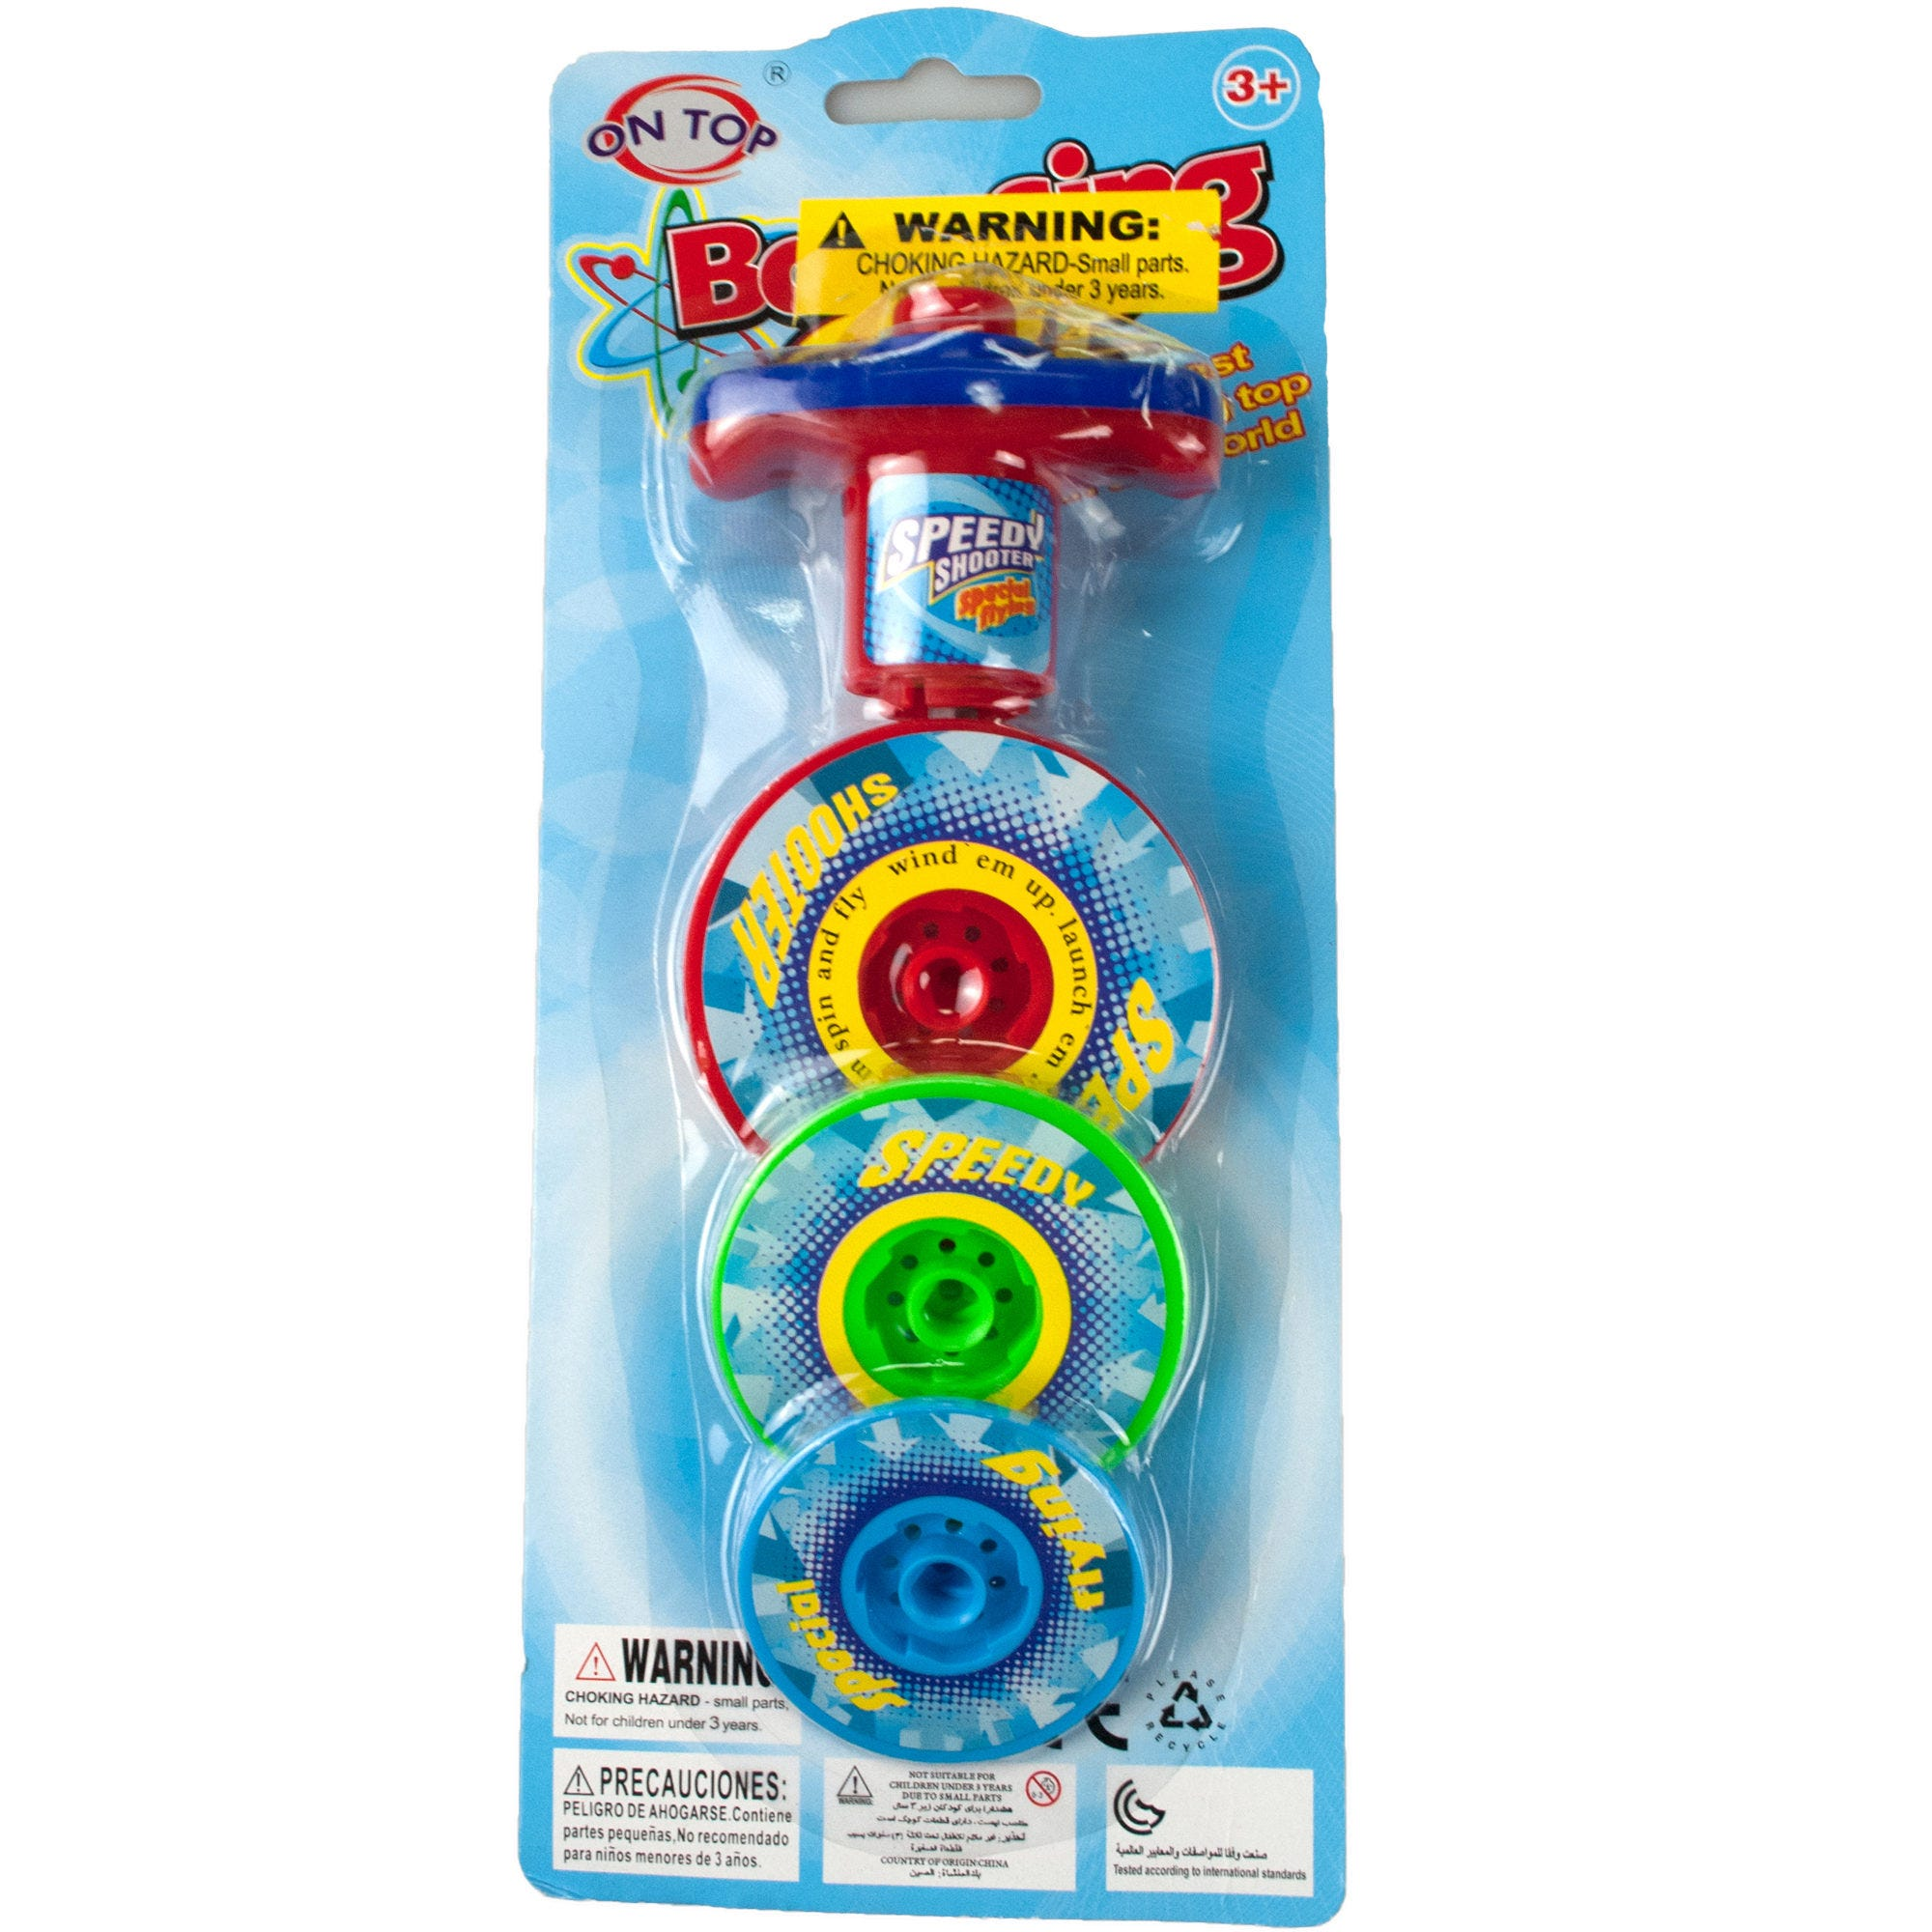 3 Layer Bouncing Top SPINNER Toy- Qty 18